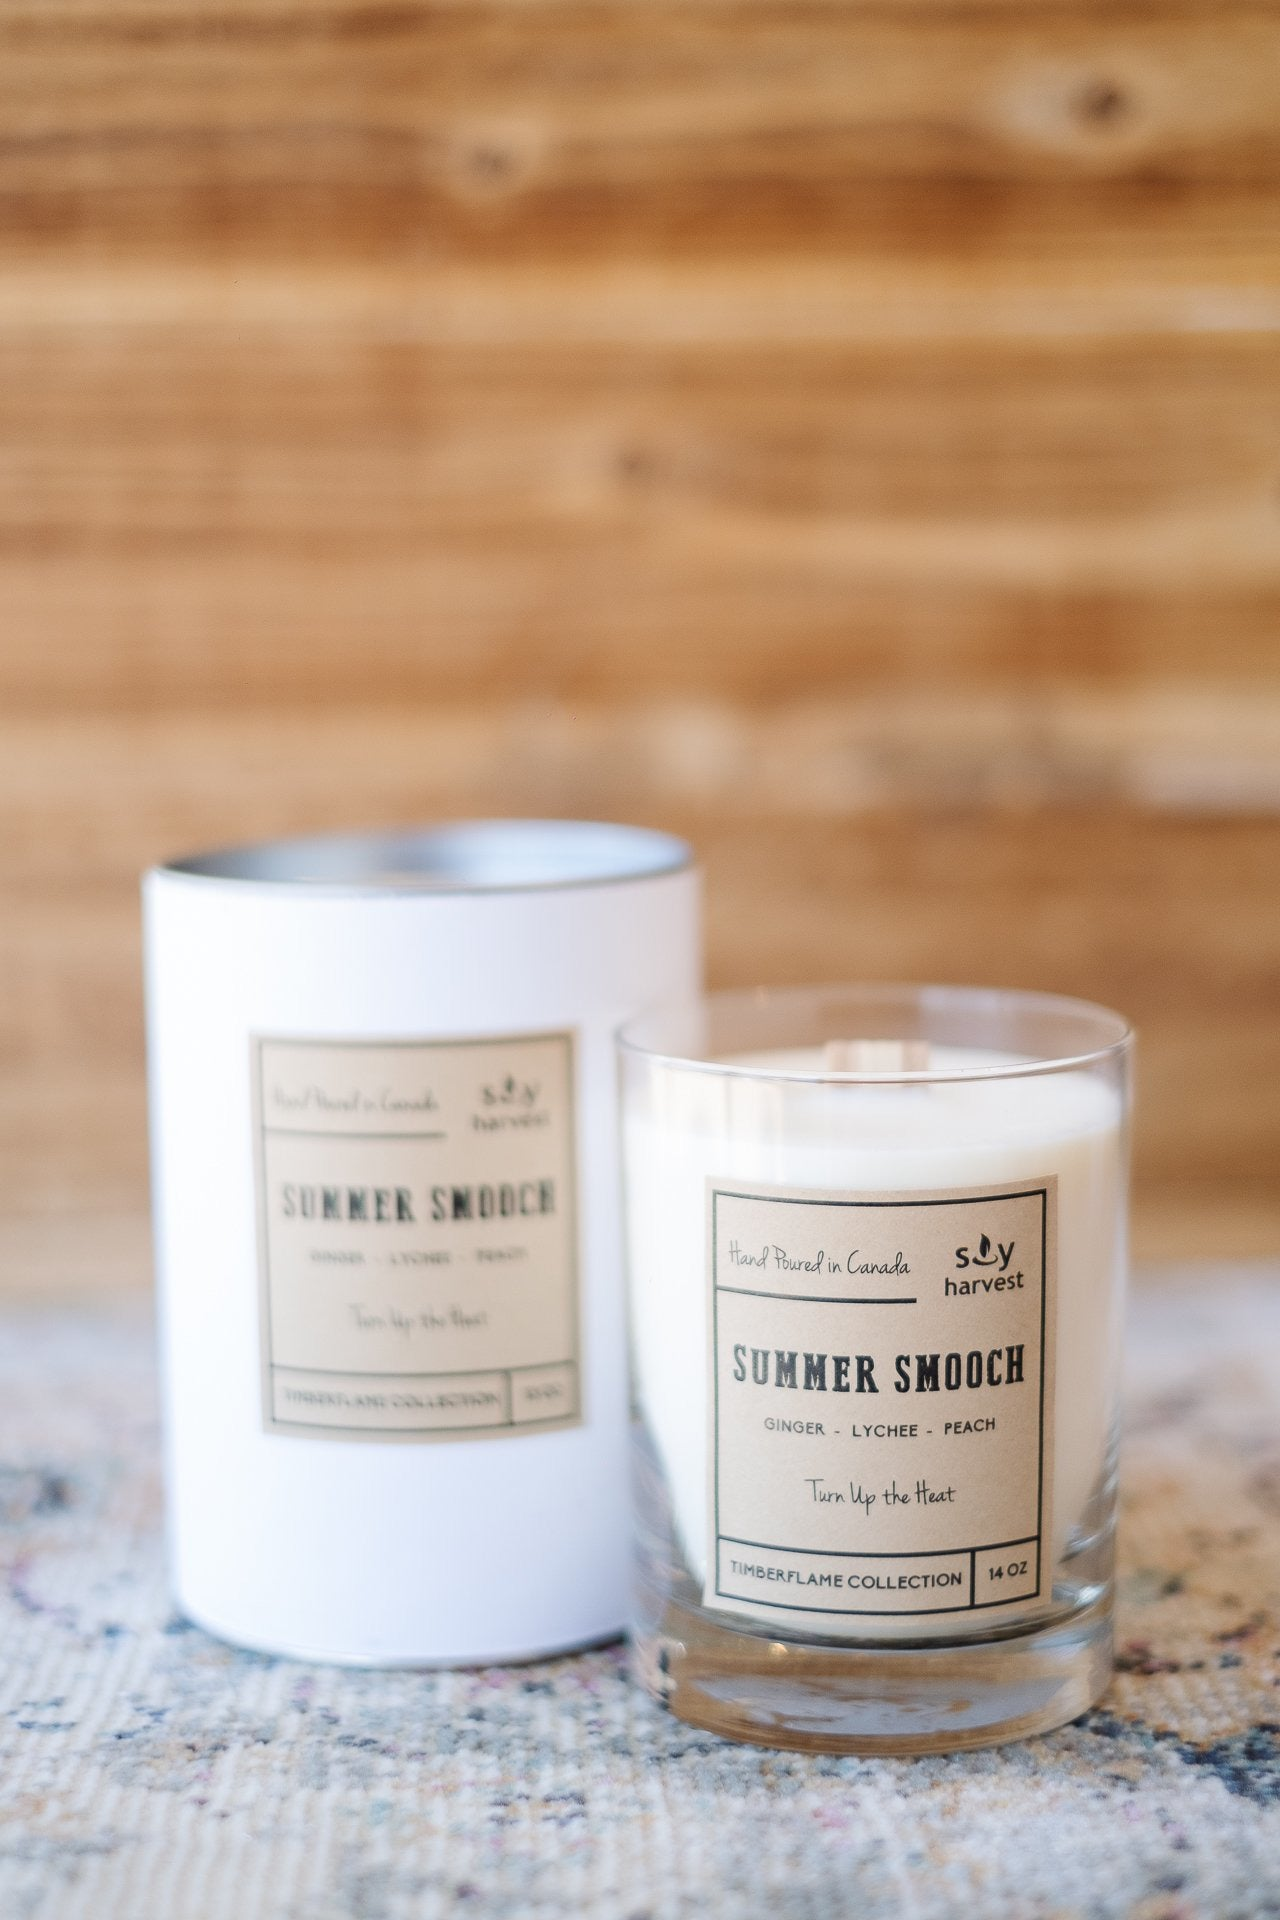 Summer Smooch Soy Harvest Candle